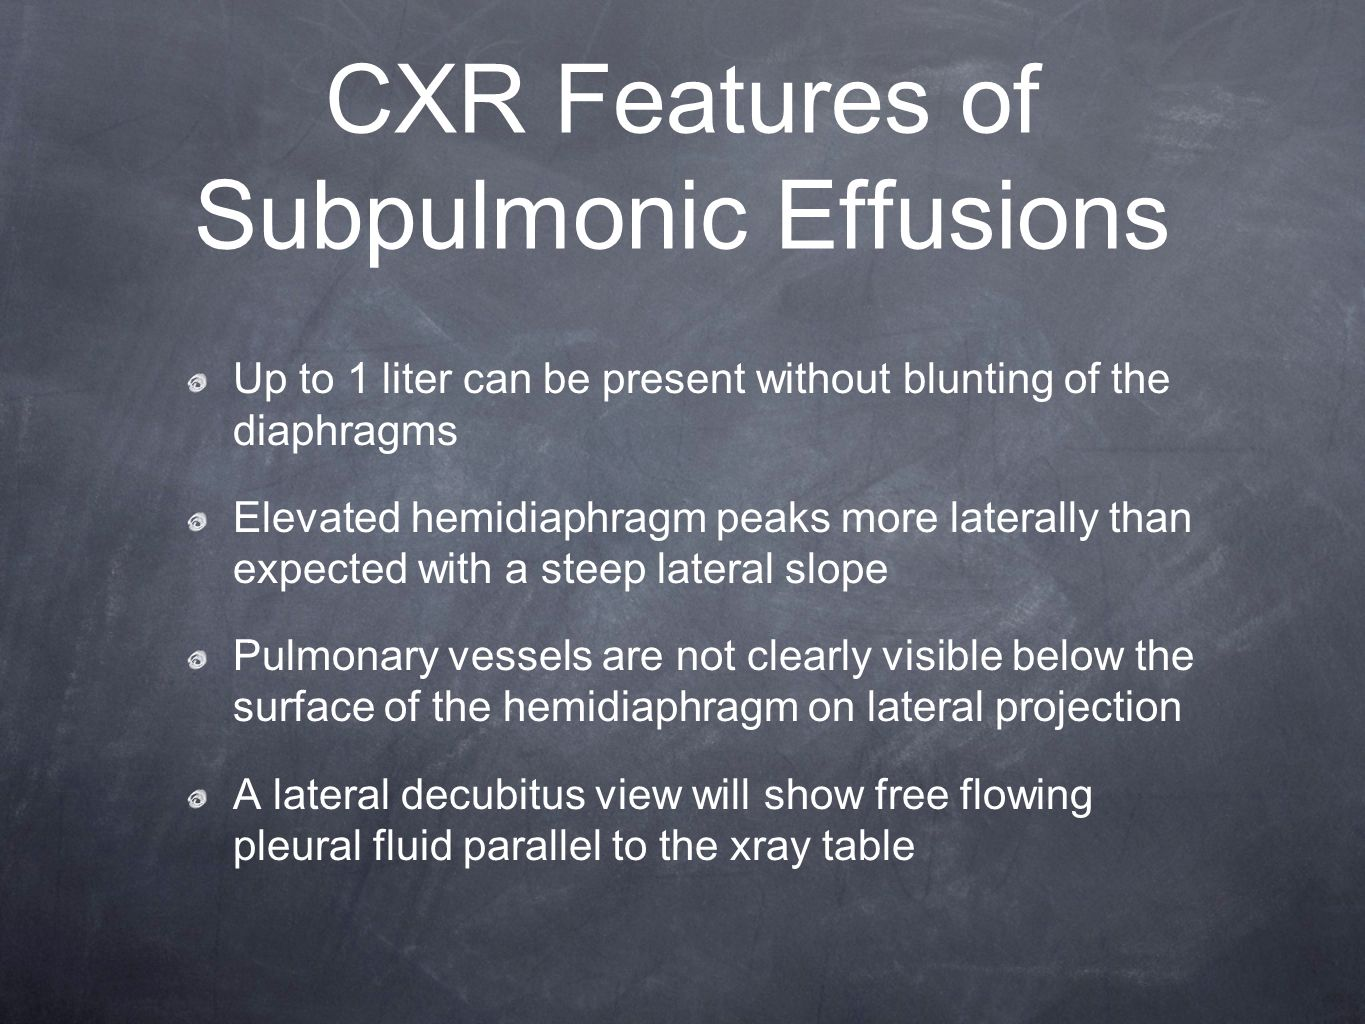 CXR Features of Subpulmonic Effusions